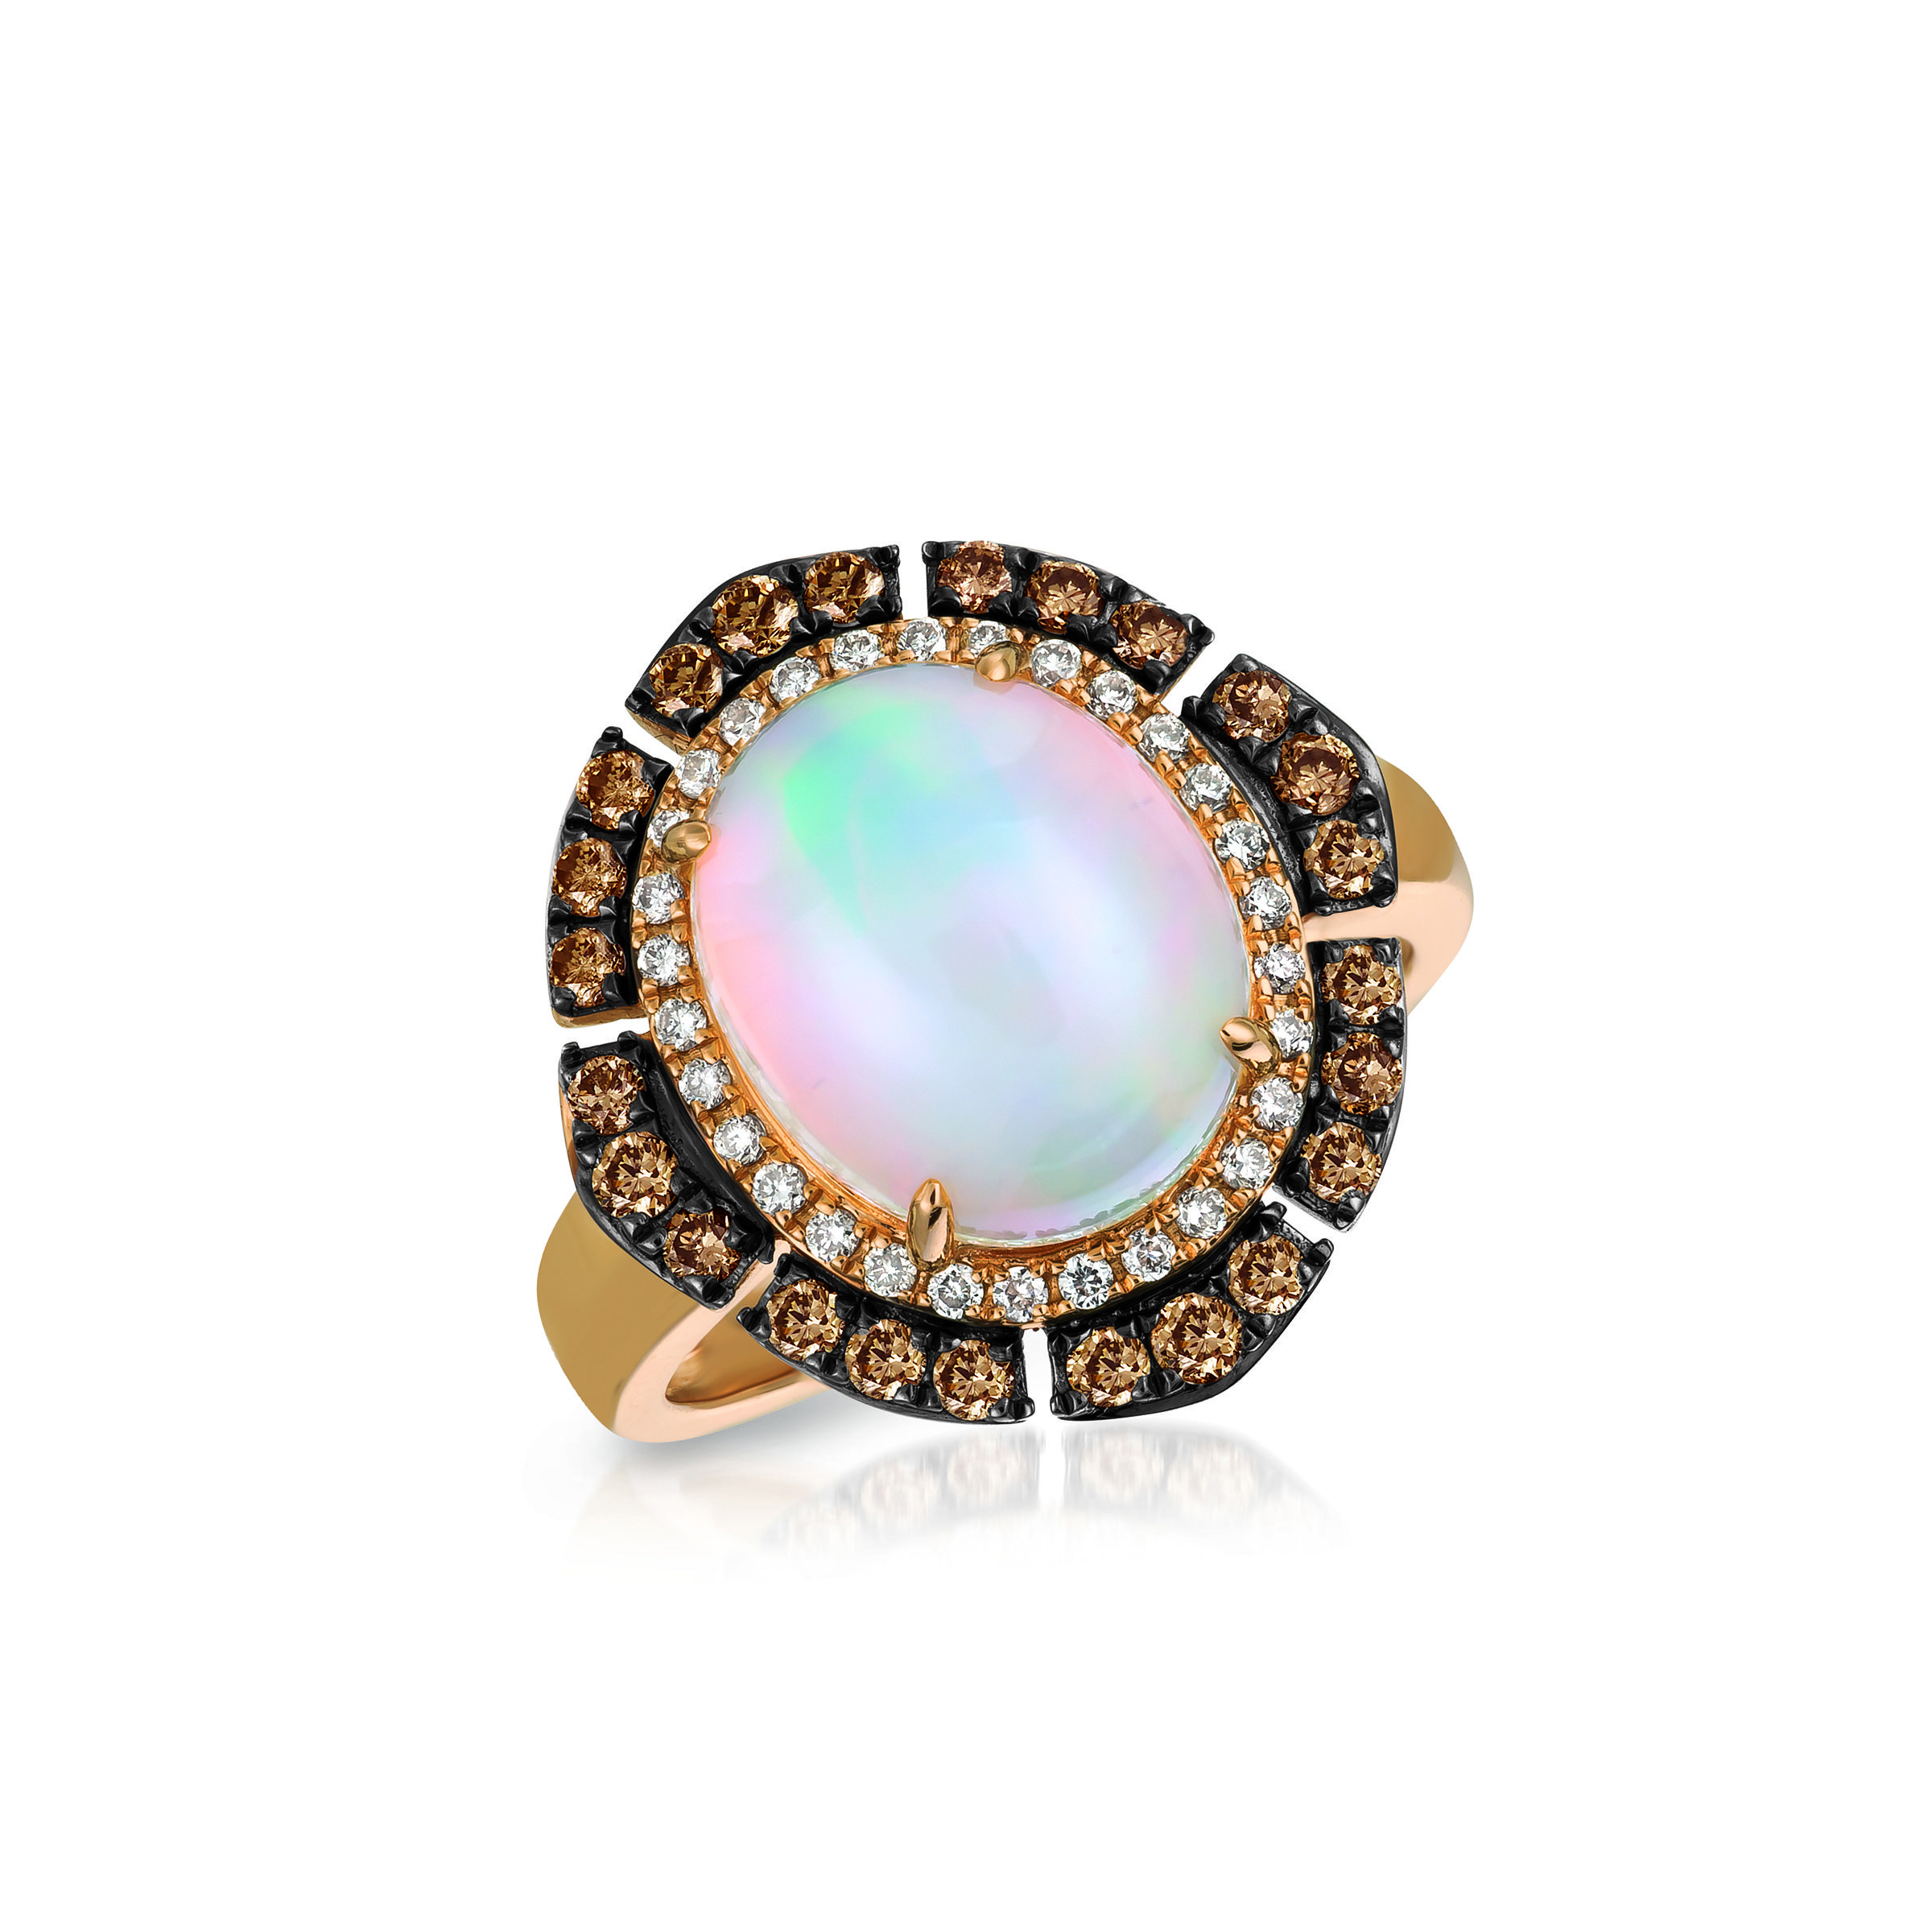 Le Vian Chocolatier ring in 14K Strawberry Gold featuring a 2 750